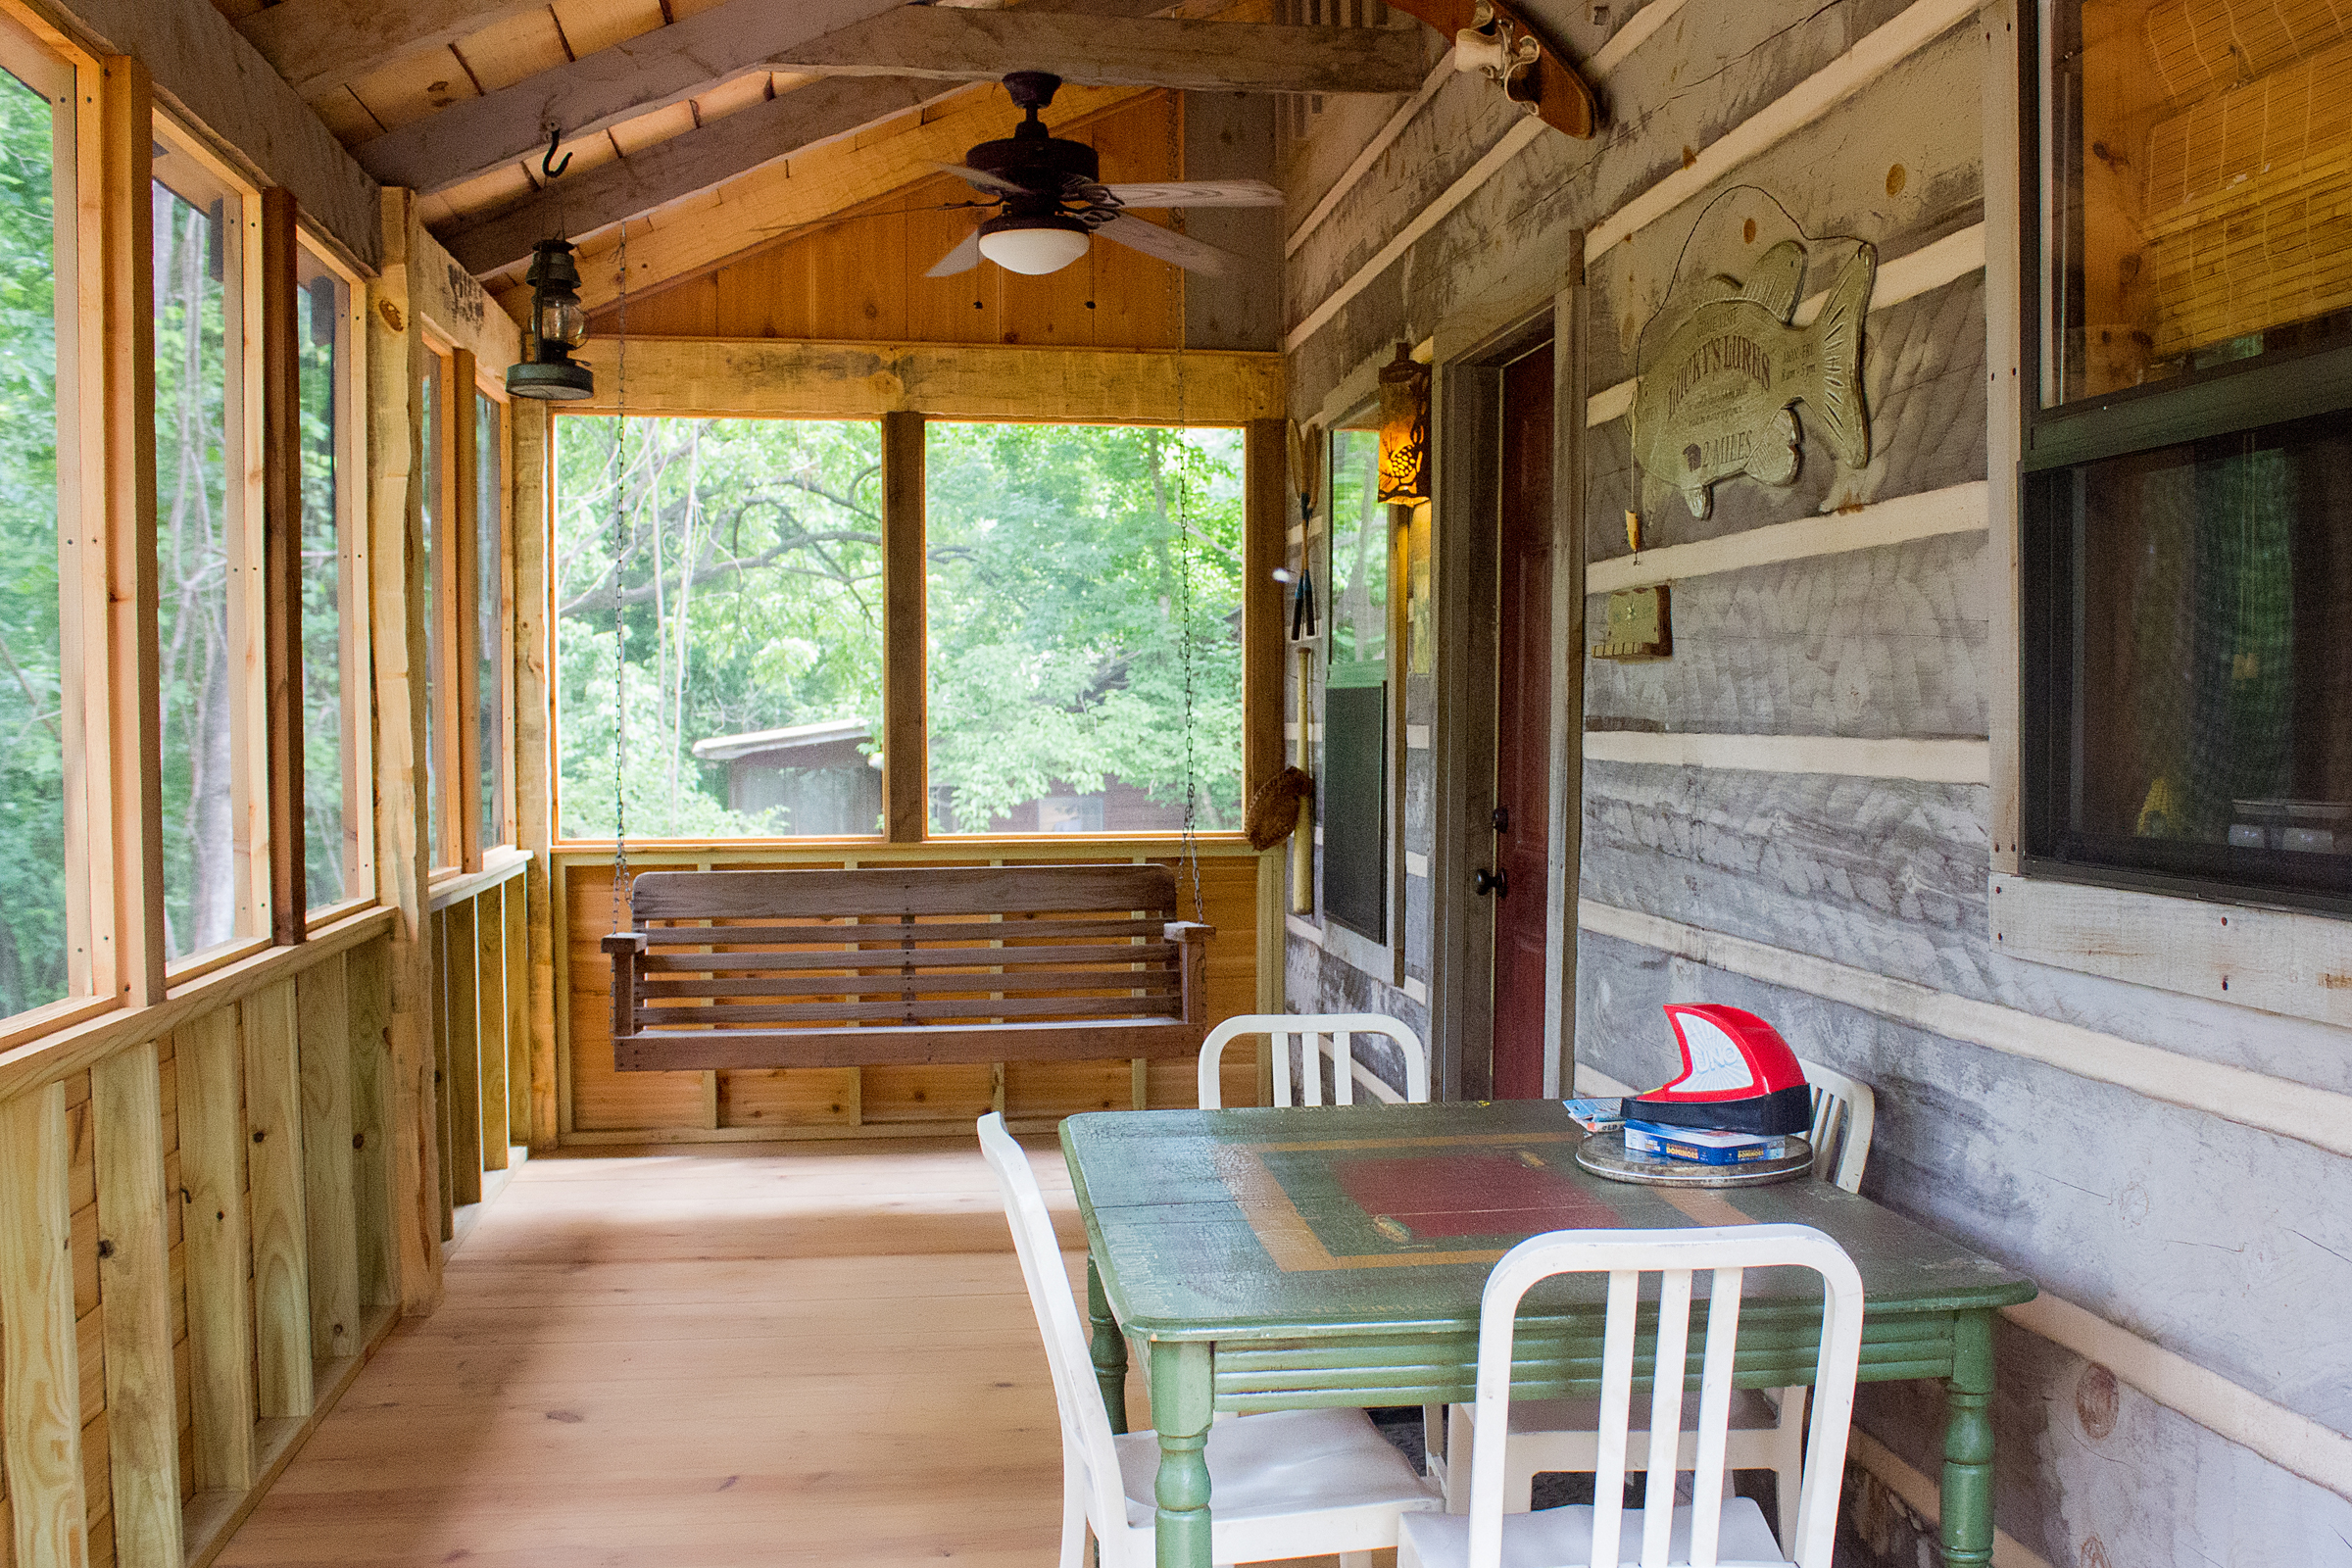 stay arkansas rentals camping int sub parks lodging ar to places state cabins in cabin